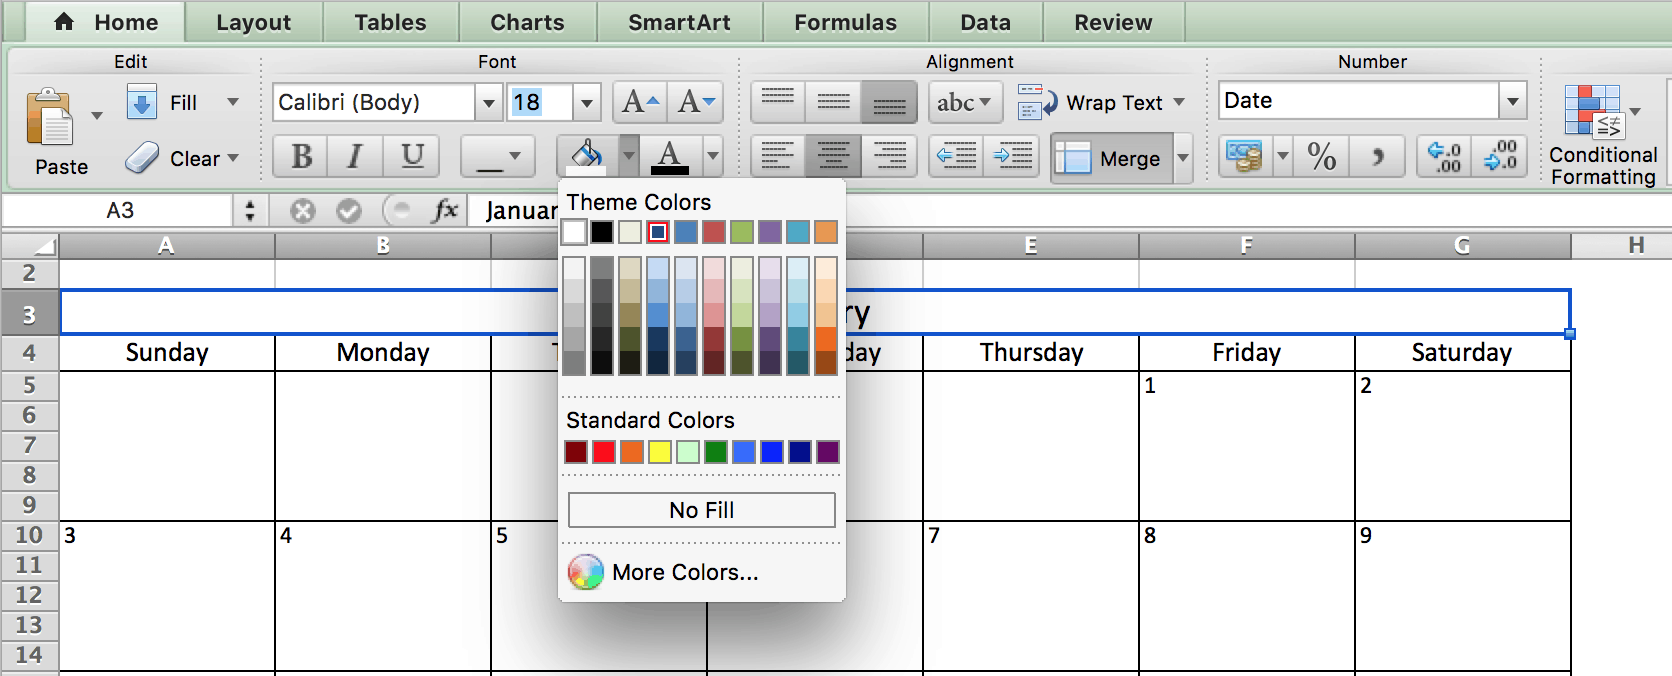 Ediblewildsus  Terrific Make A  Calendar In Excel Includes Free Template With Fascinating Choosing Colors  Calendar In Excel With Enchanting Excel Vba Date Function Also Excel  Tutorial Pdf In Addition How To Become An Expert In Excel And How To Use Correlation In Excel As Well As Mpp To Excel Additionally Excel Subtraction Formulas From Smartsheetcom With Ediblewildsus  Fascinating Make A  Calendar In Excel Includes Free Template With Enchanting Choosing Colors  Calendar In Excel And Terrific Excel Vba Date Function Also Excel  Tutorial Pdf In Addition How To Become An Expert In Excel From Smartsheetcom